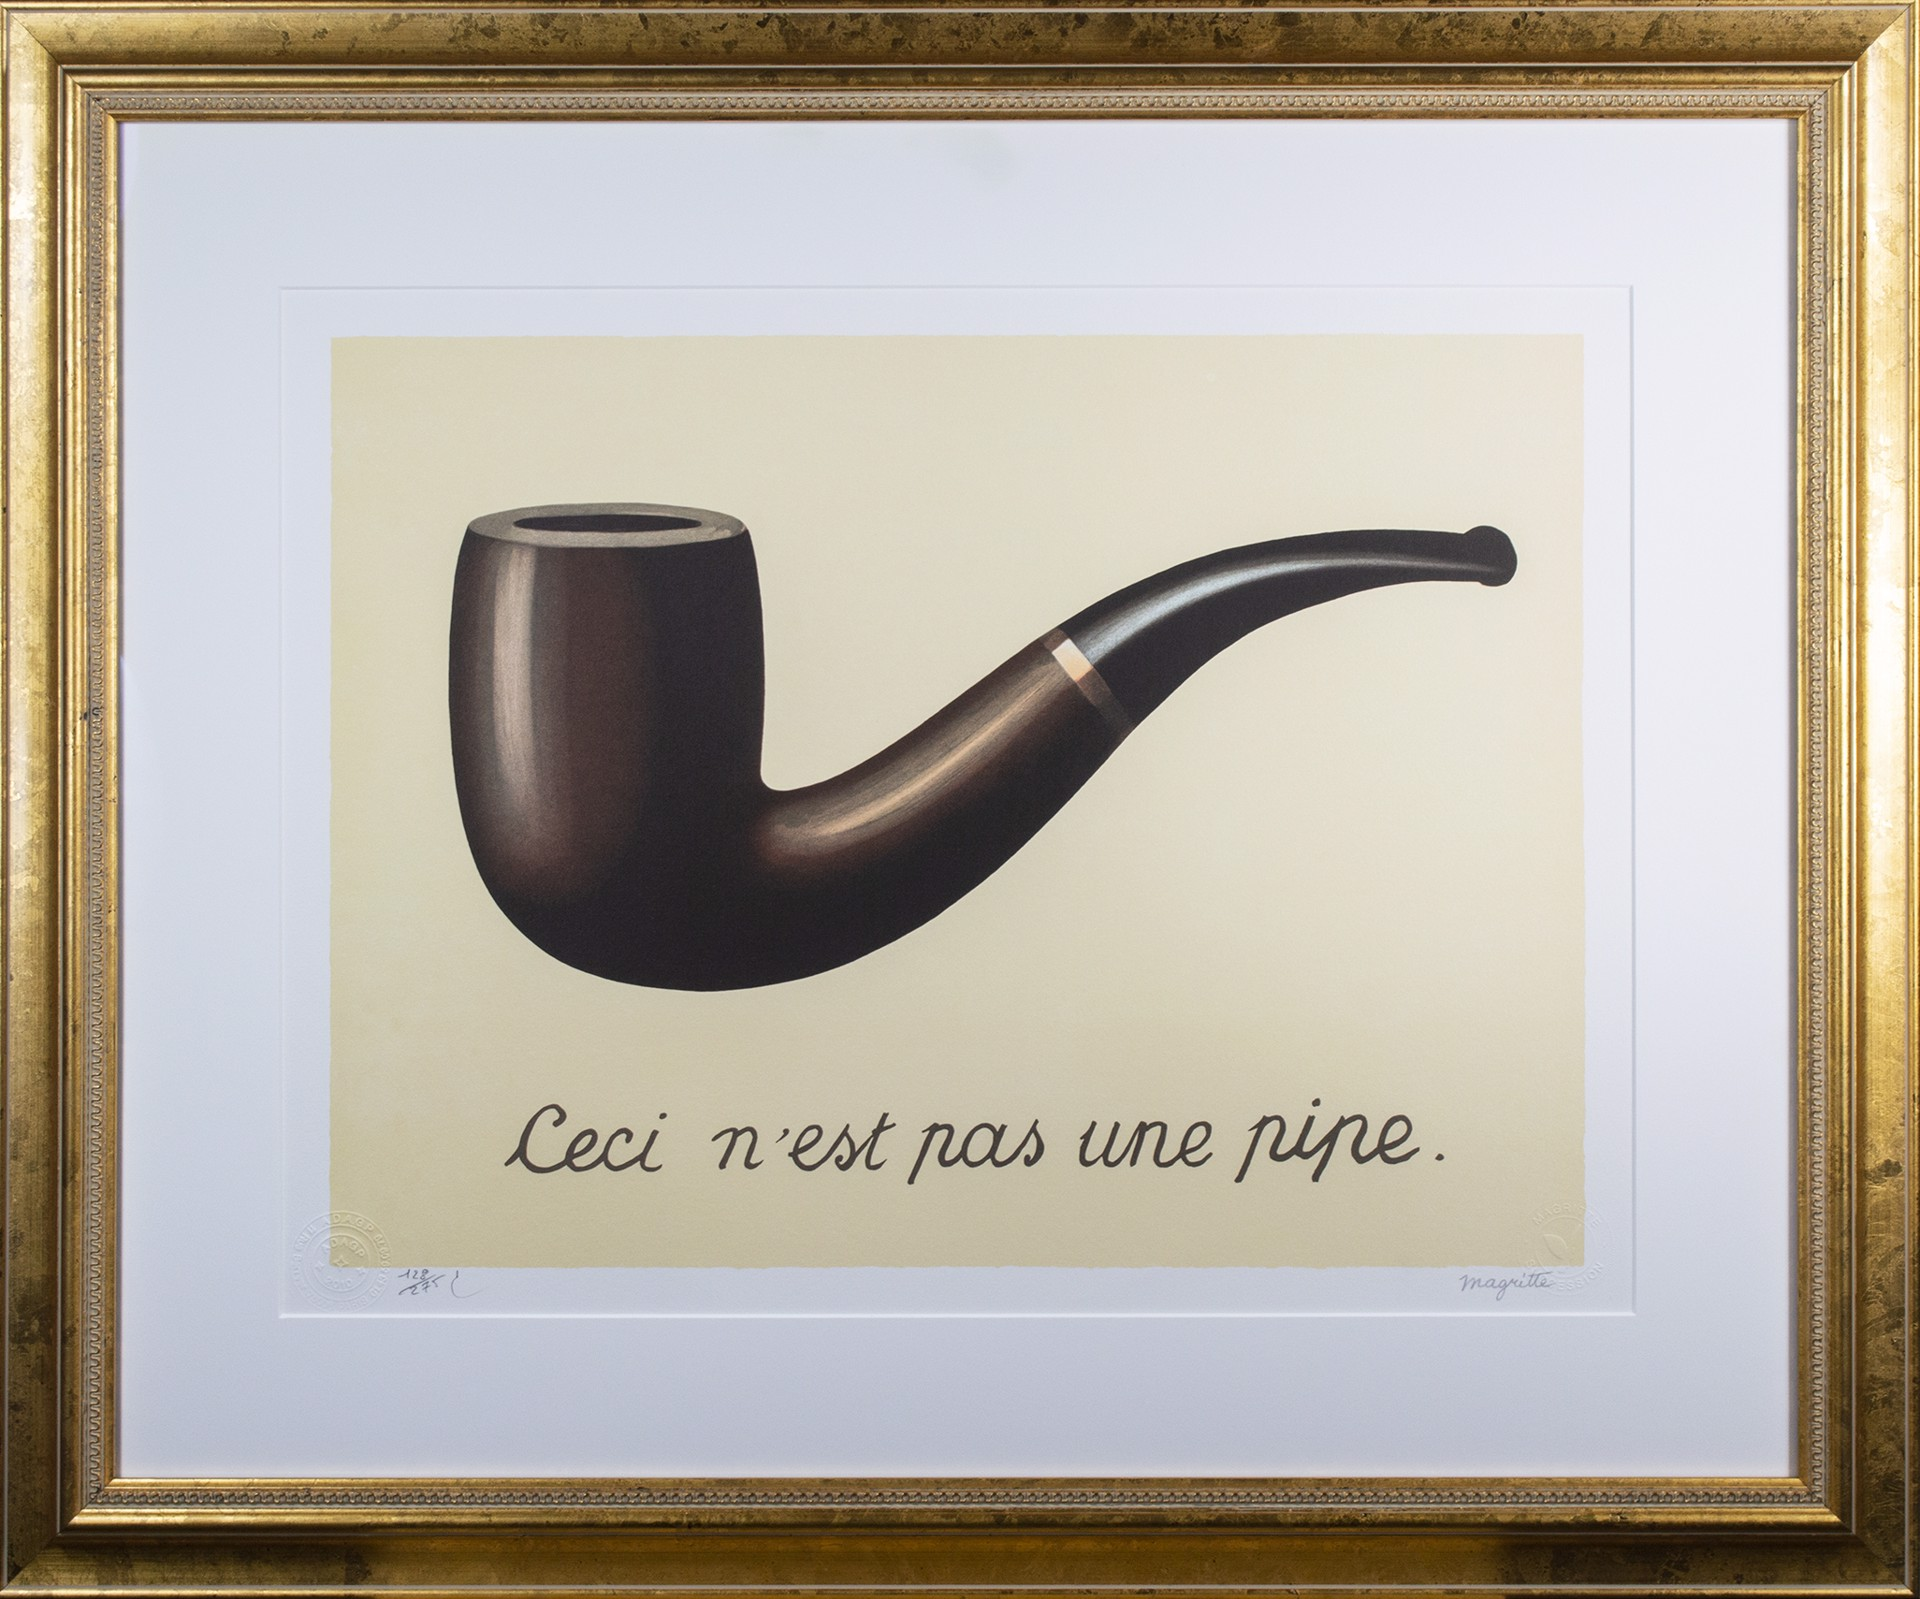 La Trahison des images (The Treachery of Images) by Rene Magritte